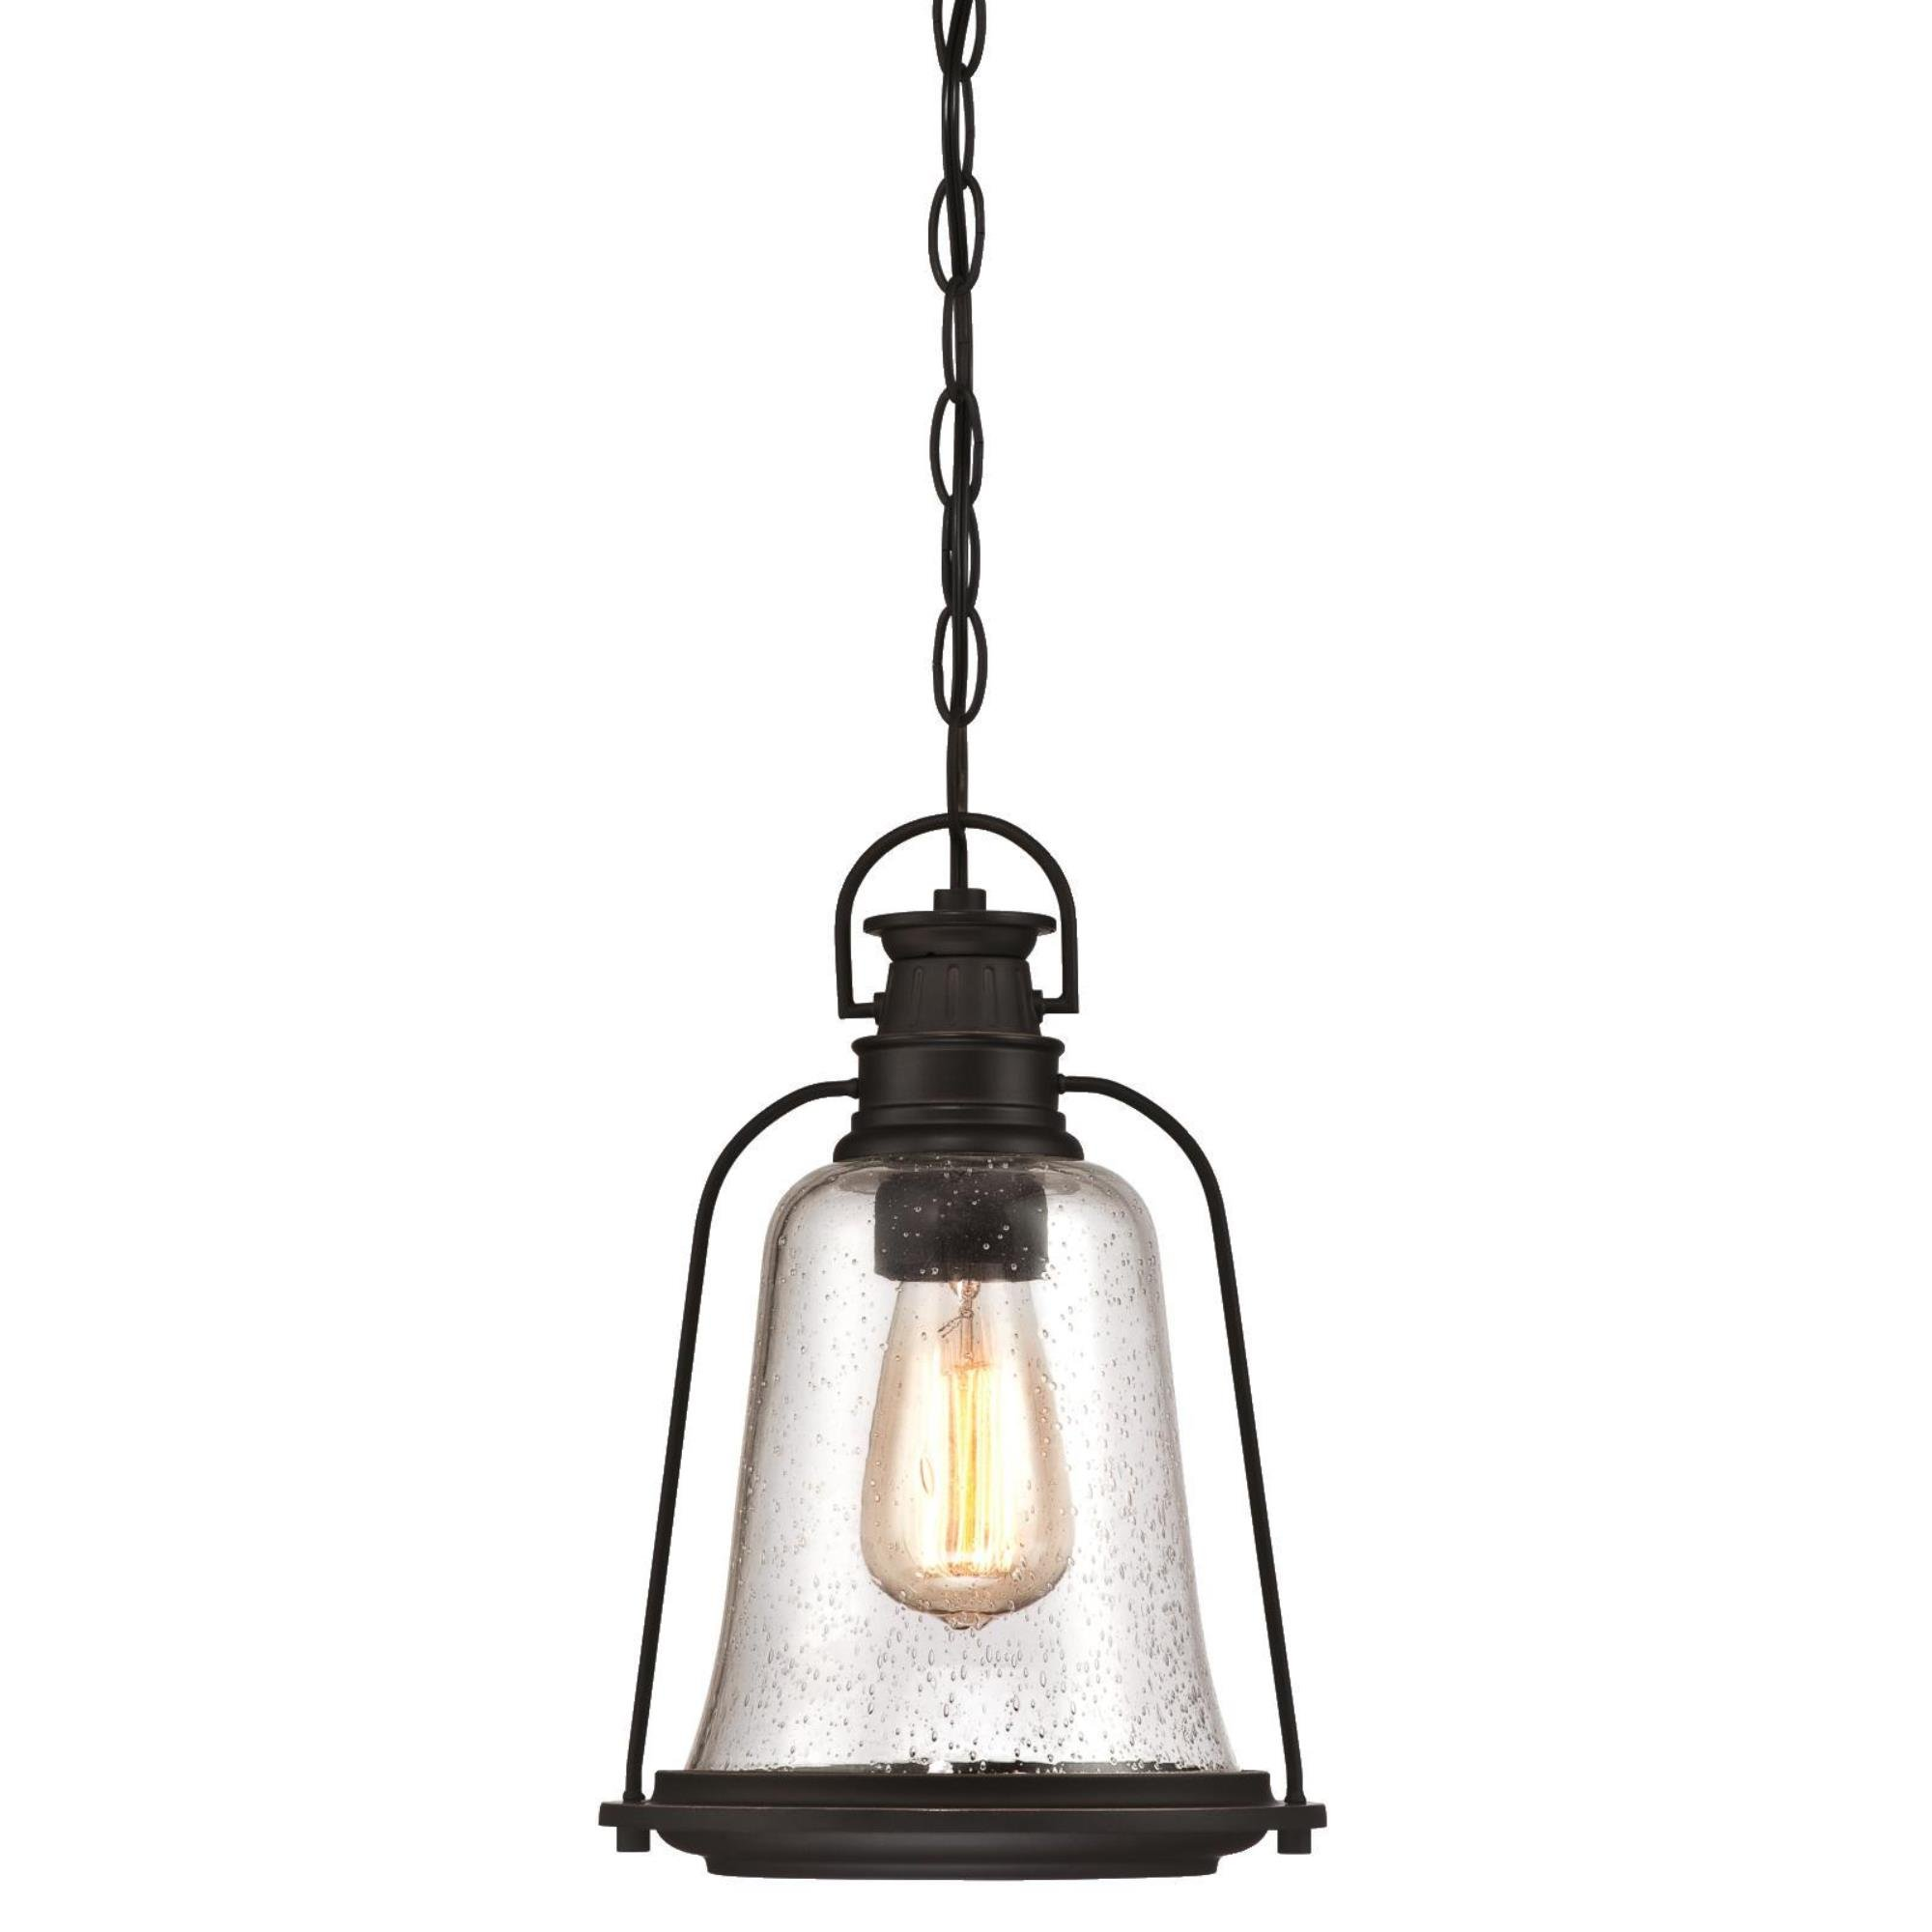 Westinghouse Lighting 6339900 Brynn One-Light Outdoor Pendant, Oil Rubbed Bronze Finish with Highlights and Clear Seeded Glass by Westinghouse Lighting